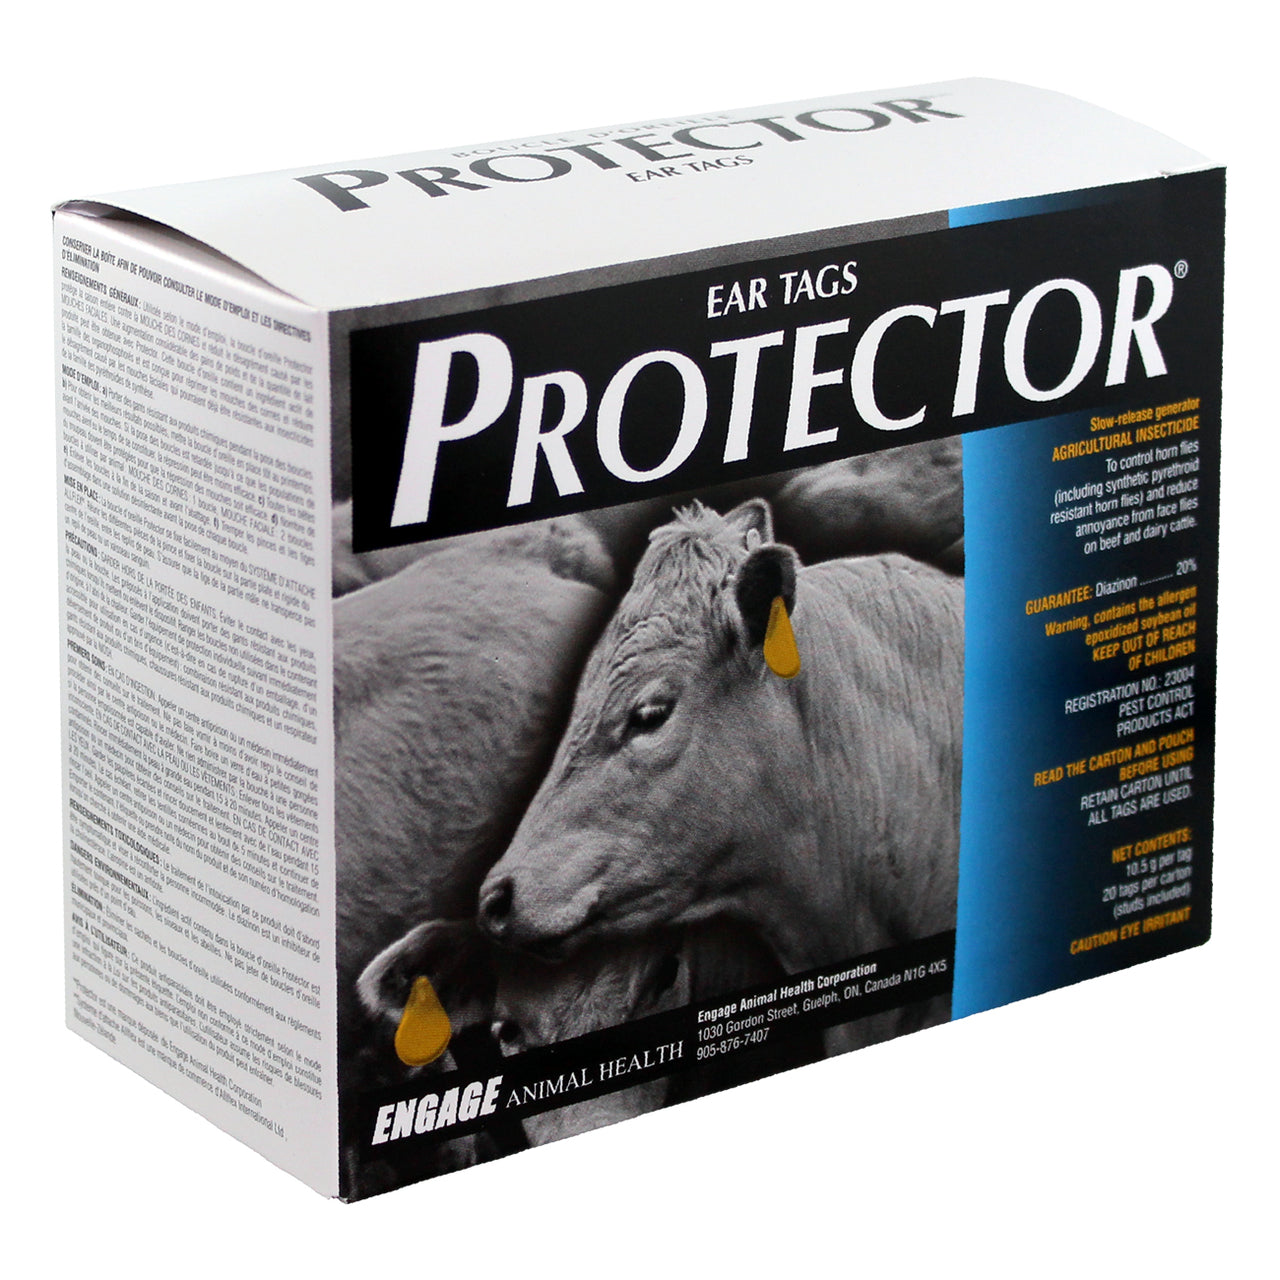 Protector Ear Tags (20 tags per carton | studs included)